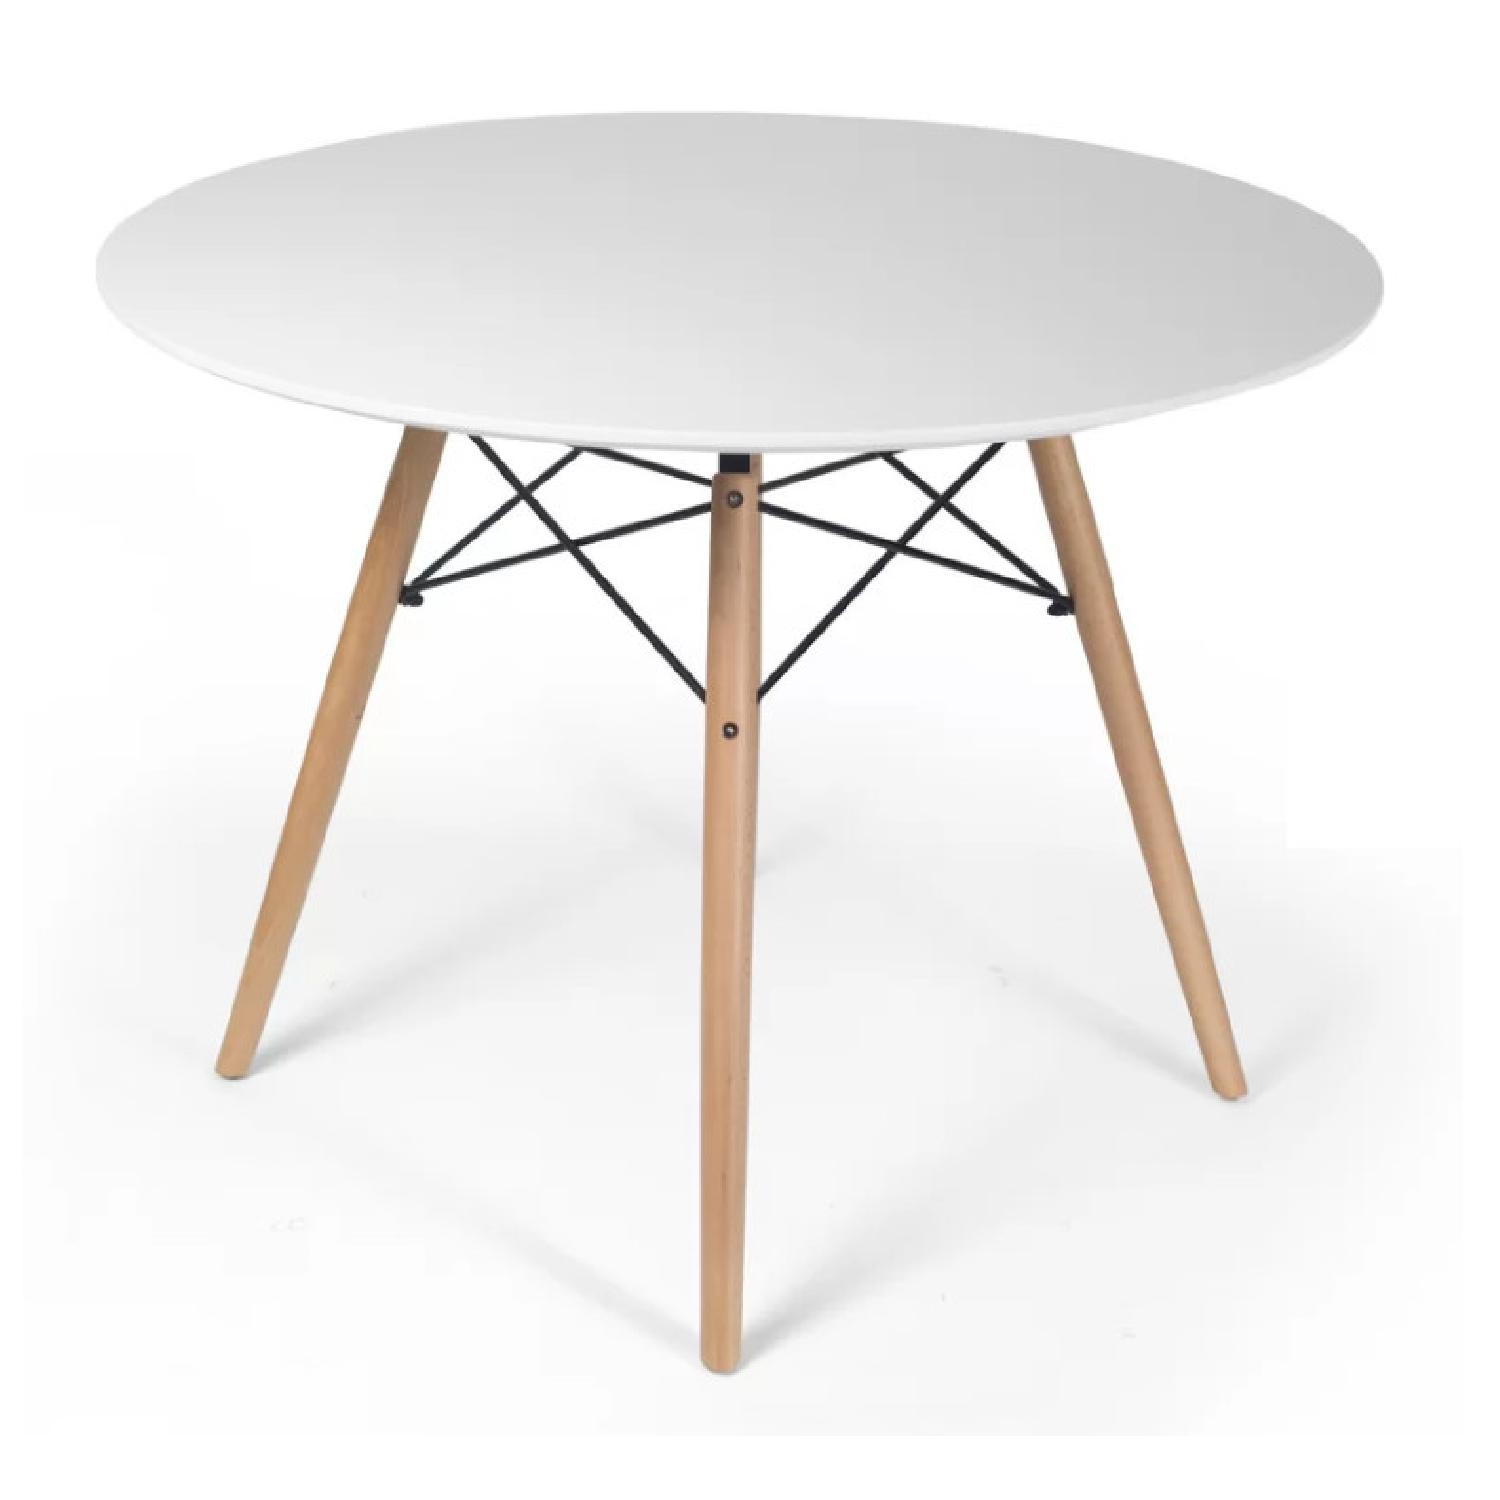 Aeon Furniture Cookson Dining Table